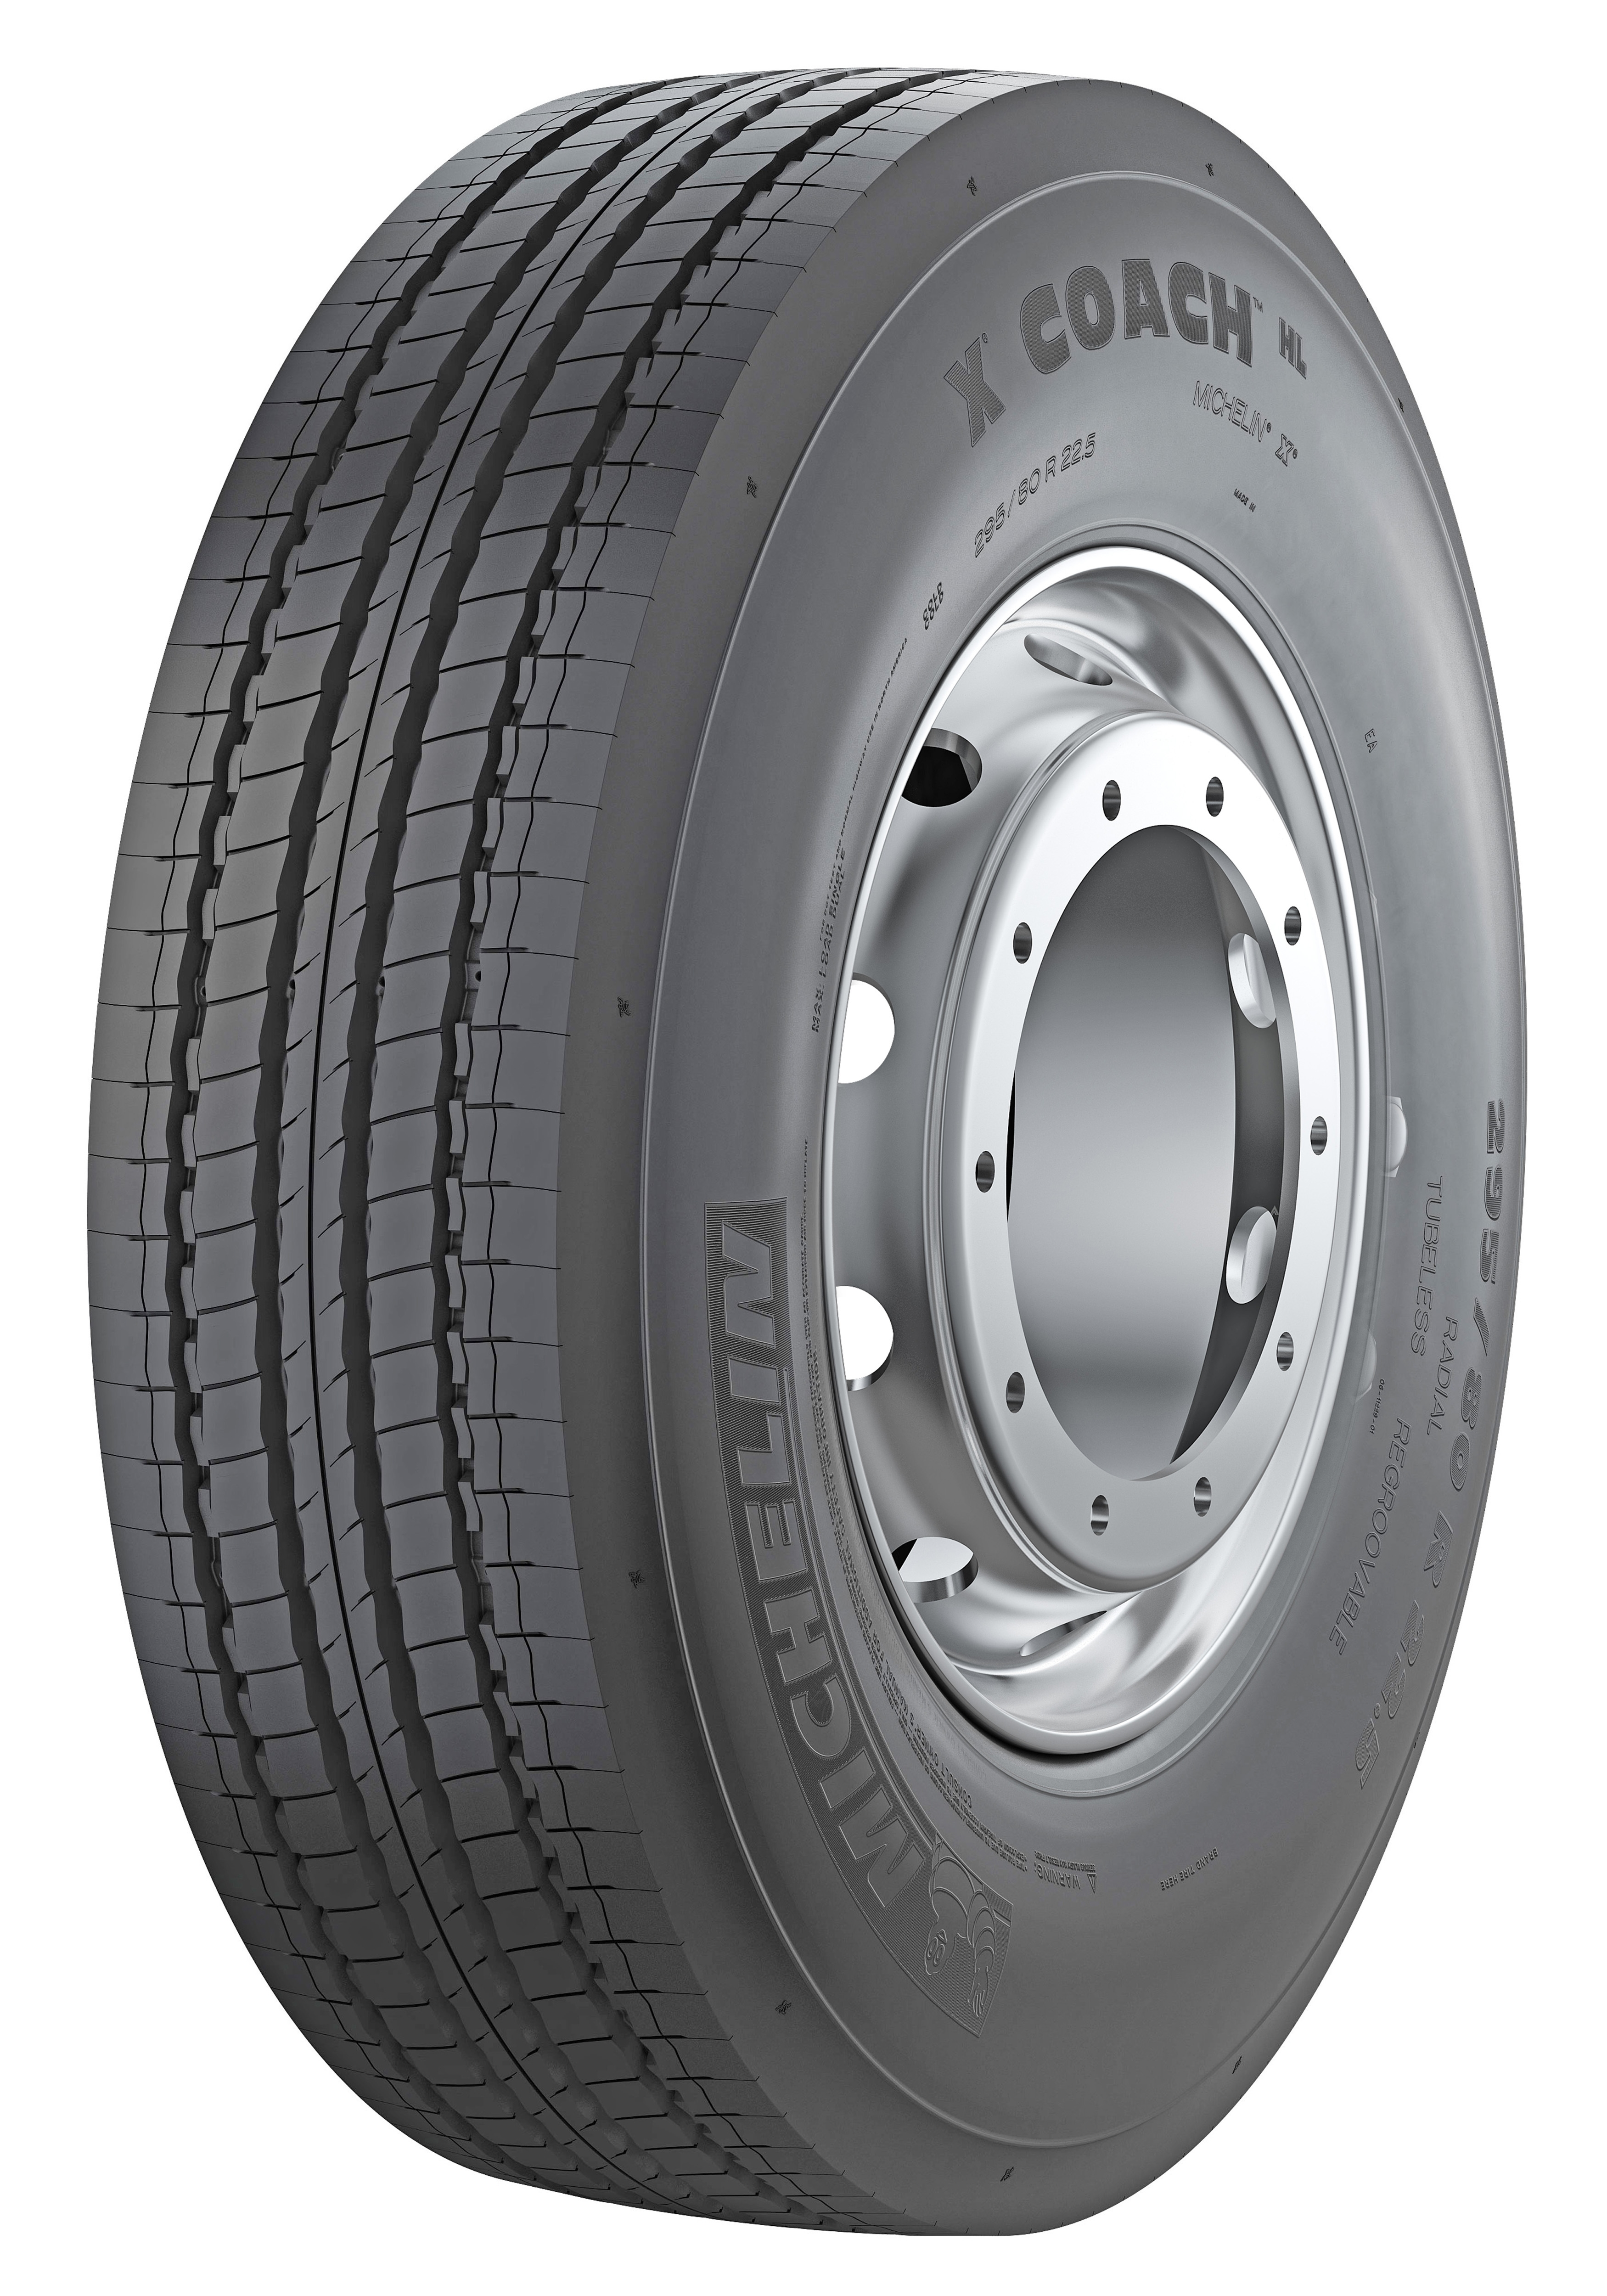 295/80 R22.5 154/150M Michelin X COACH Z